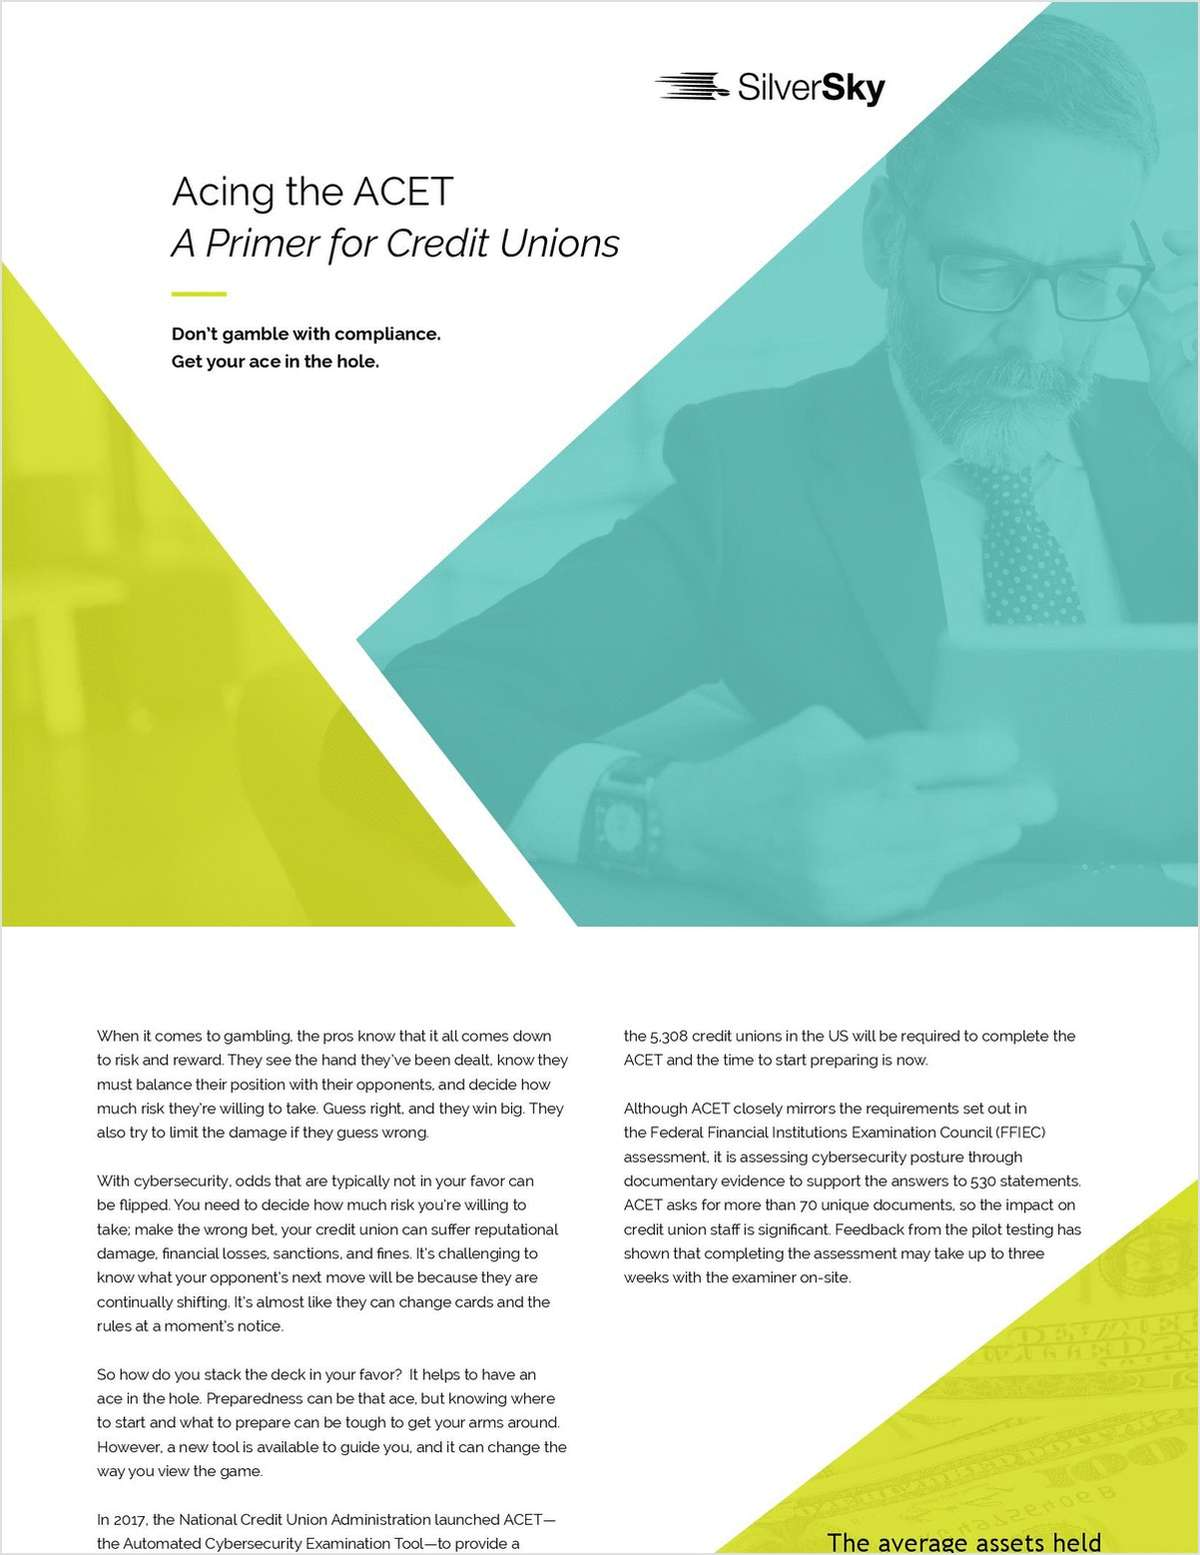 Acing the ACET: A Primer for Credit Unions